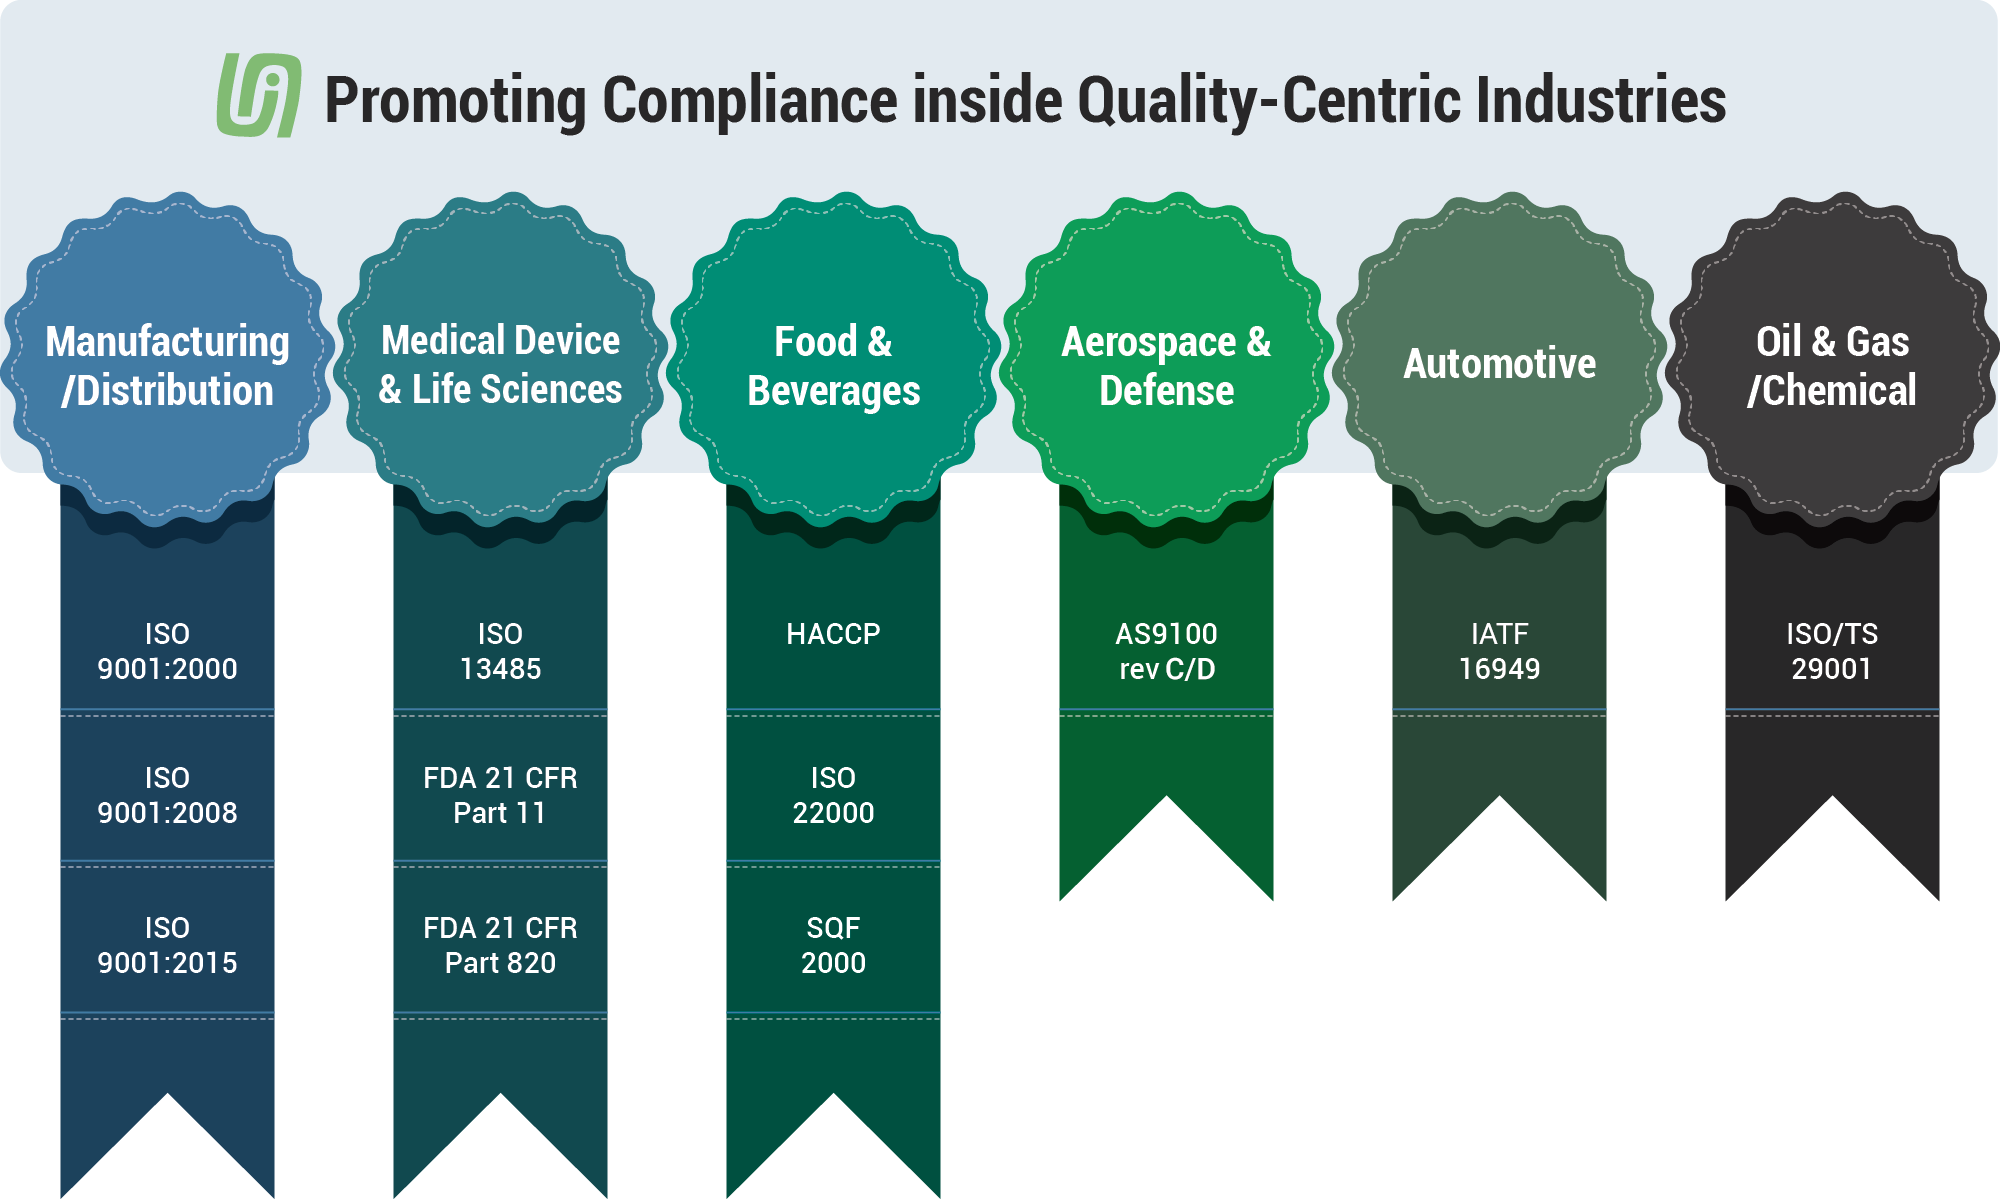 Promoting Compliance inside Quality-Centric Industries